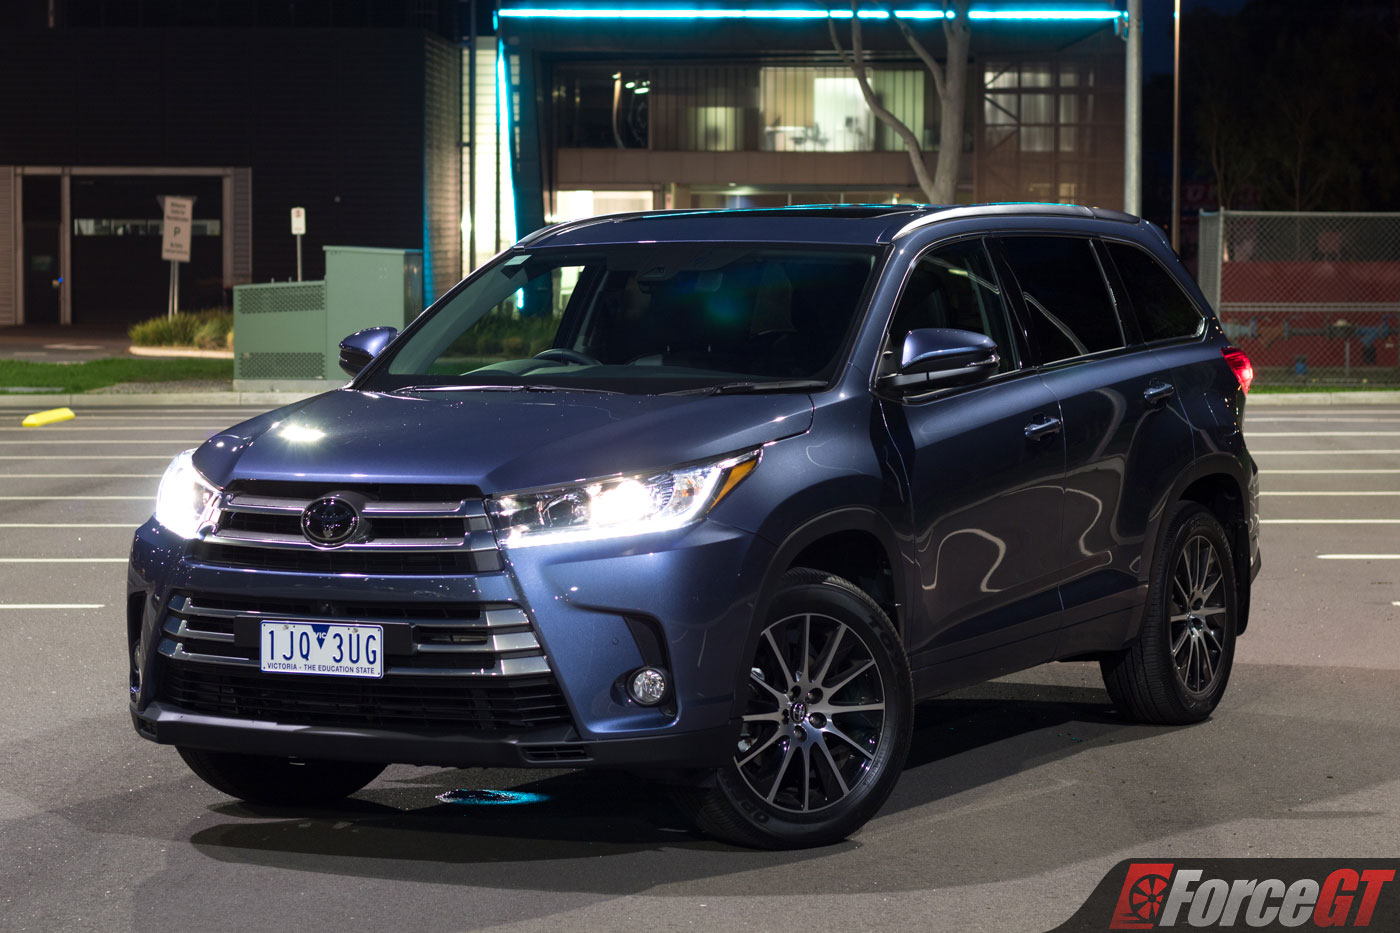 2017 Toyota Kluger Grande Awd Review Forcegt Com